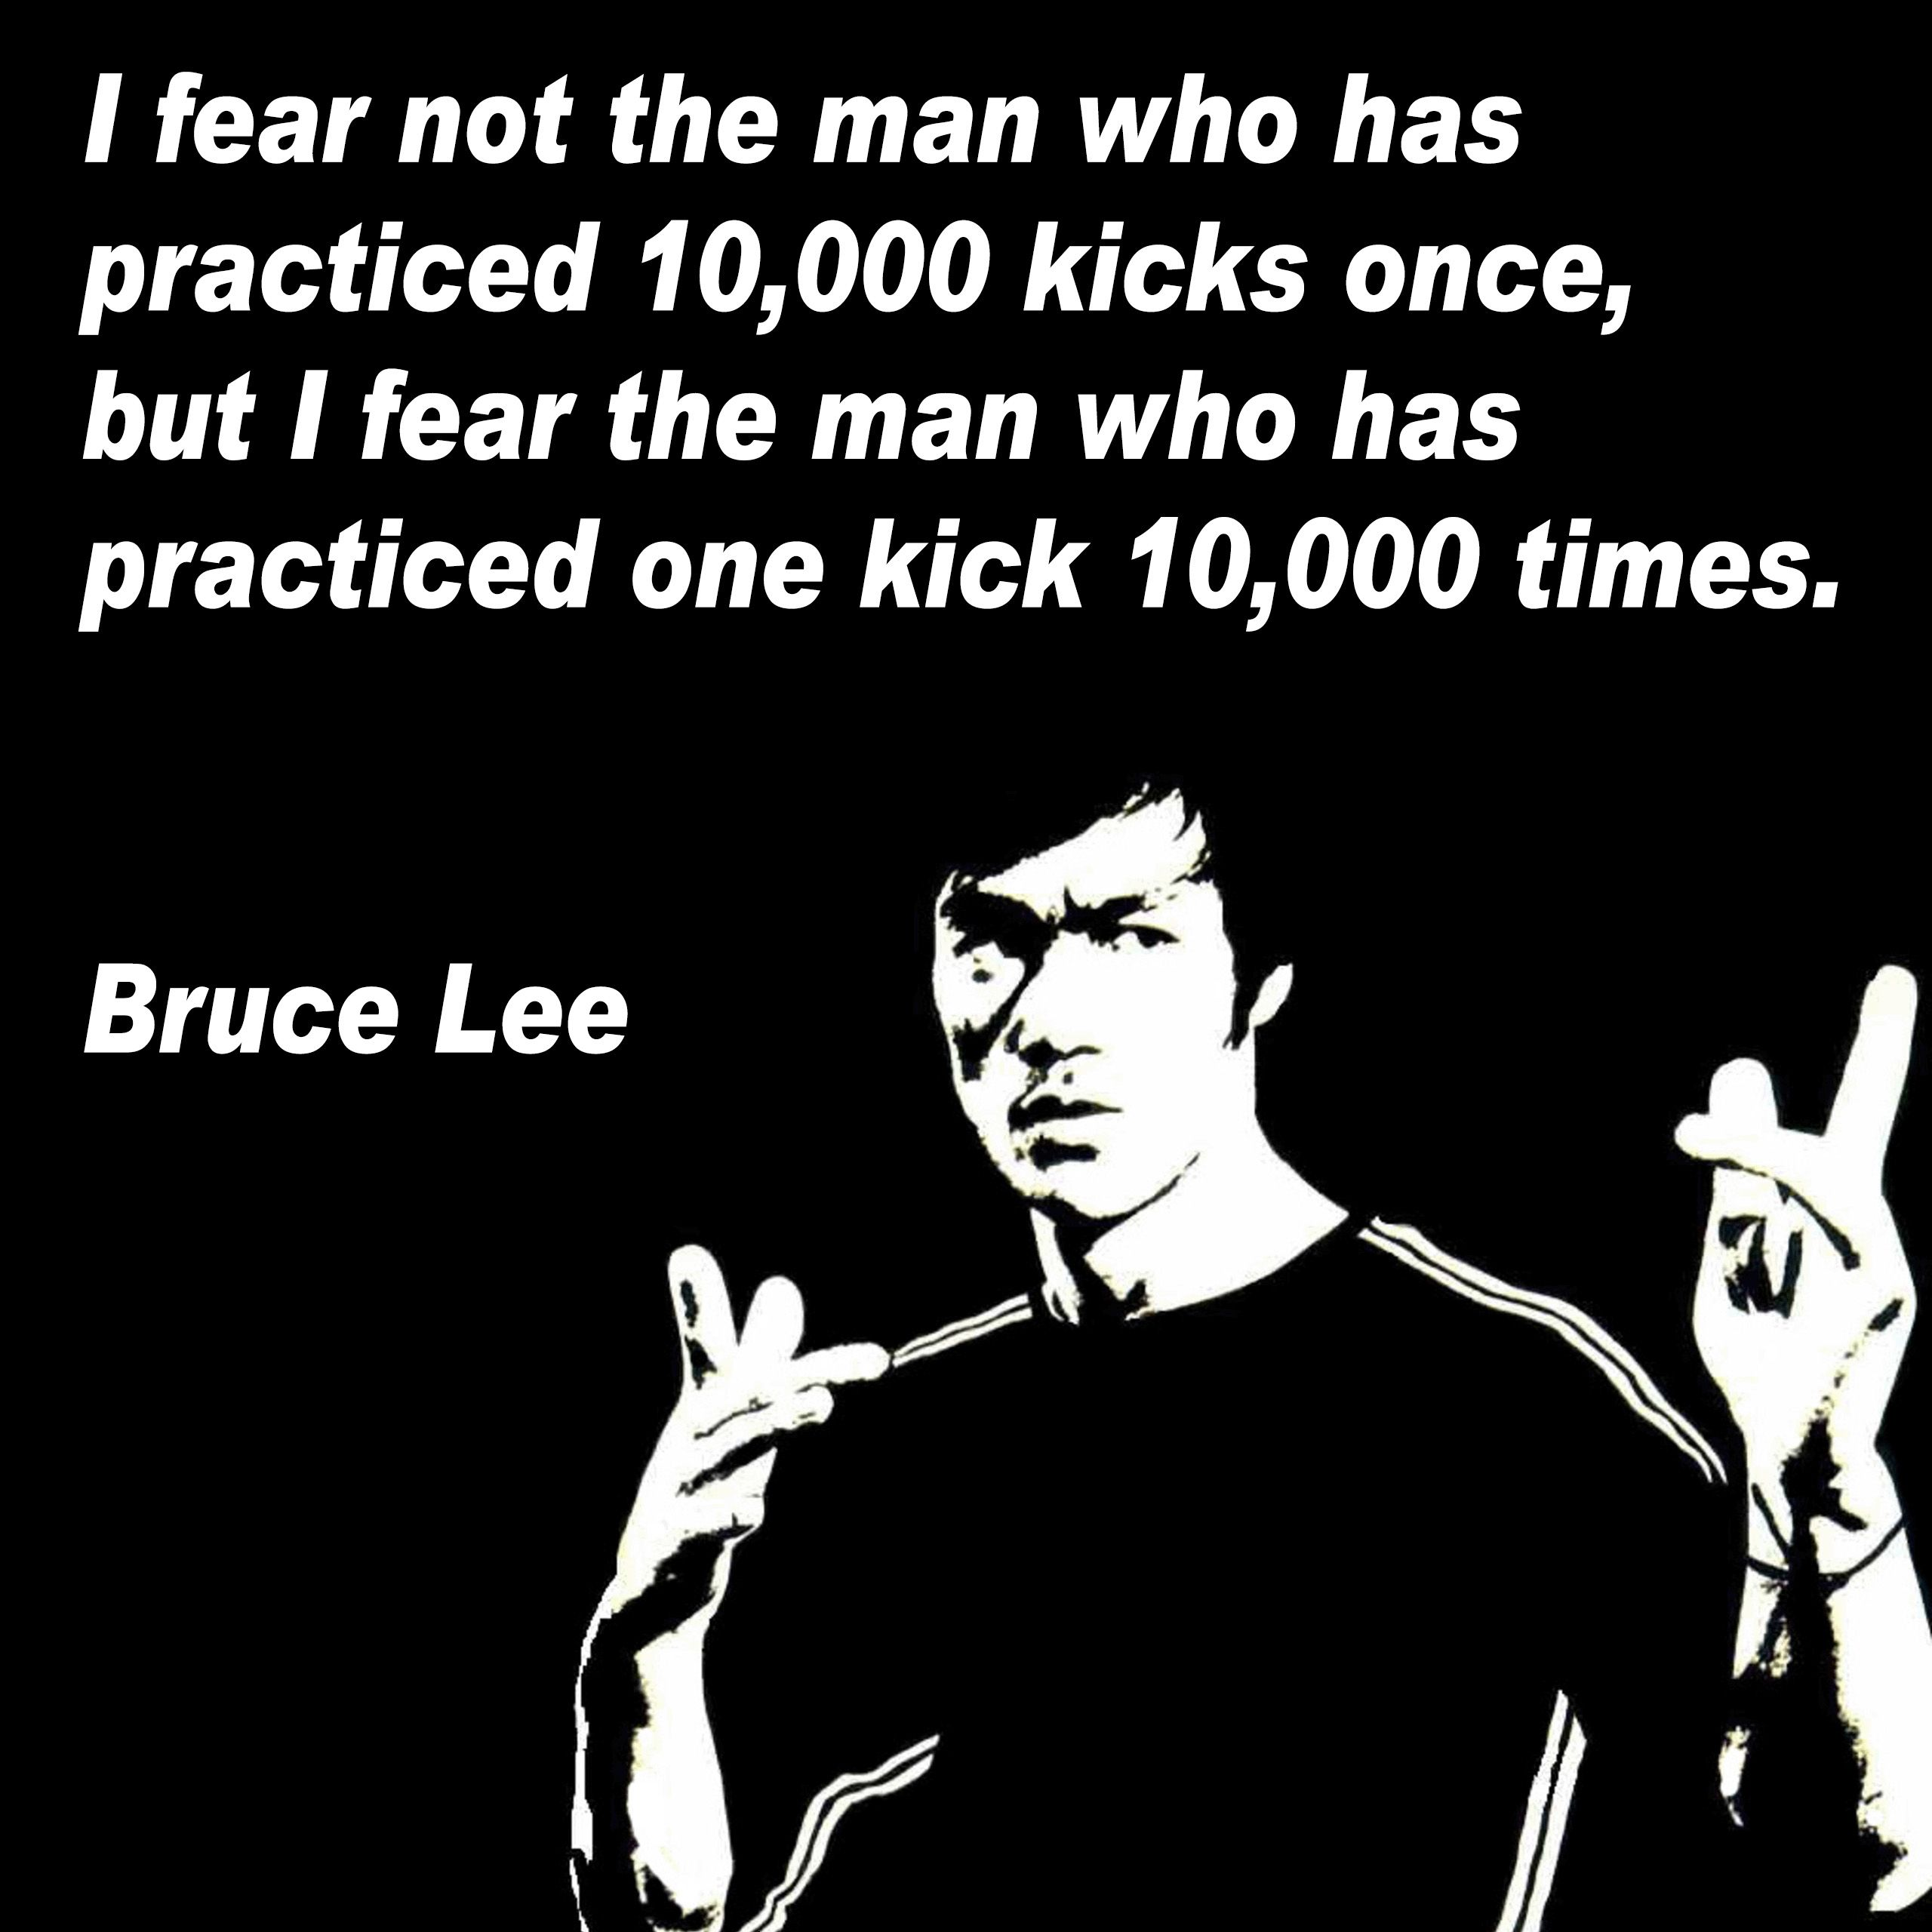 Taekwondo Quotes I Fear Not The Man Who Has Practiced 10000 Kicks Once But I Fear